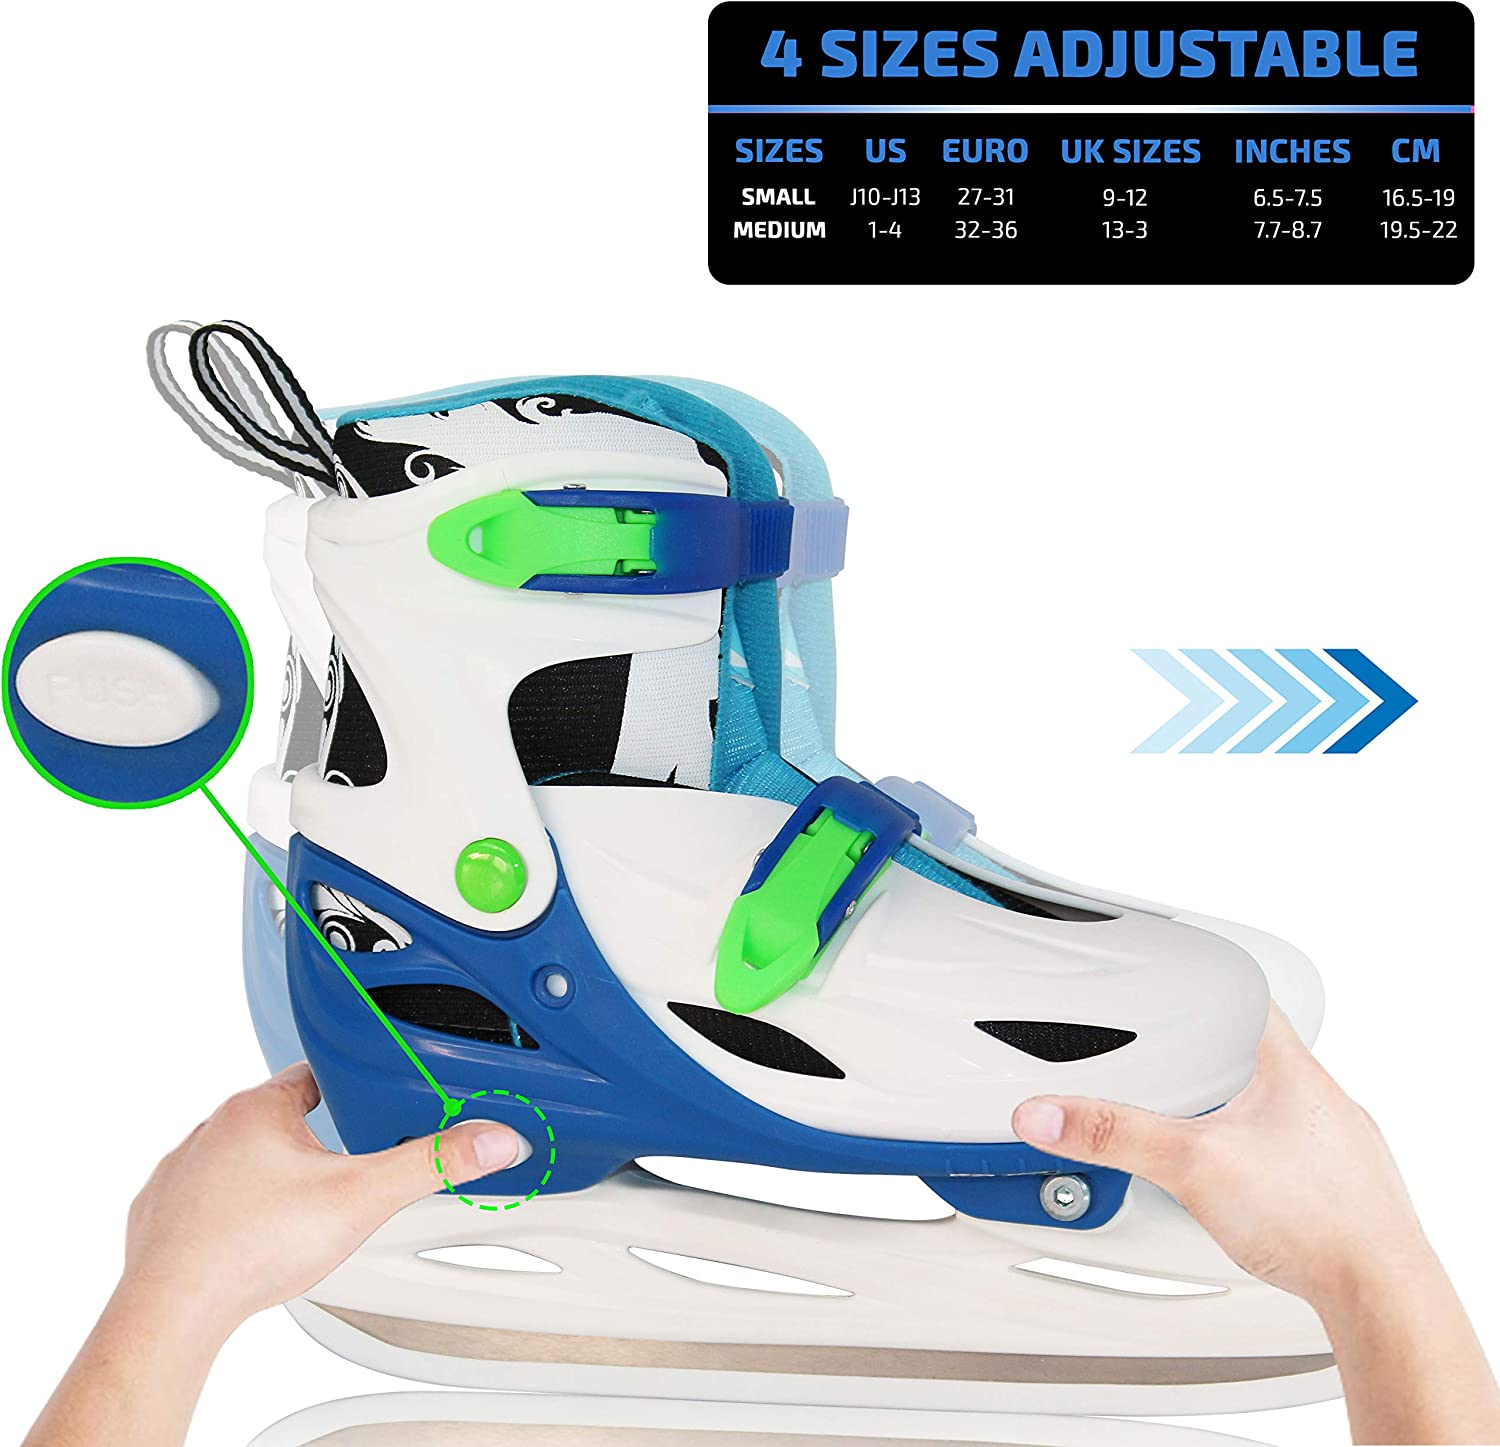 Xino Sports Adjustable Ice Skates - for Girls and Boys, Two Awesome Colors - Blue and Pink, Soft Padding and Reinforced Ankle Support, Fun to Skate! : Clothing